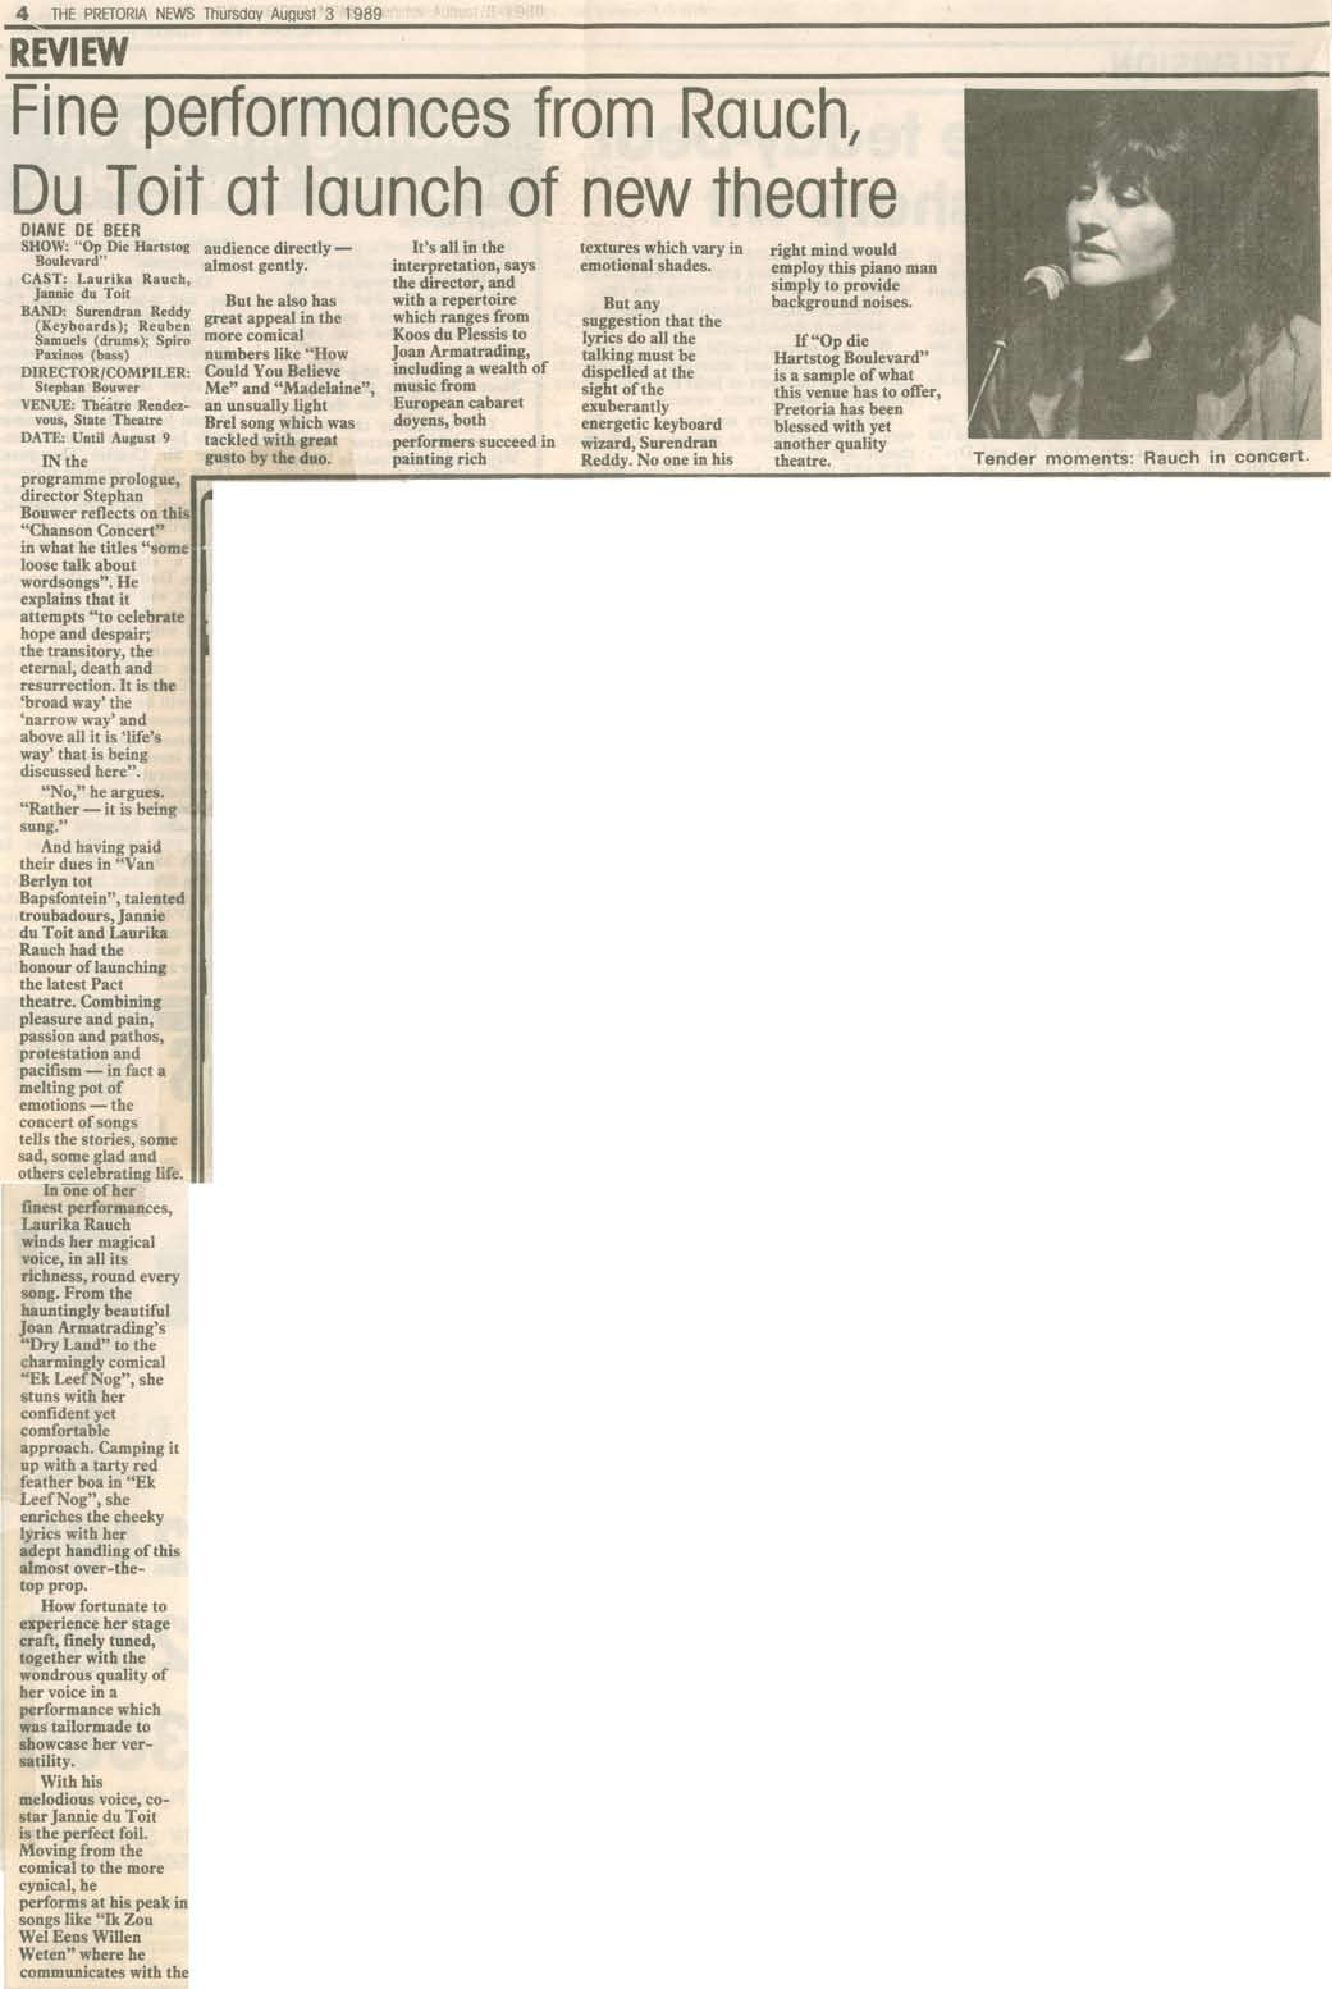 1989-pretoria-news-fine-performances-from-rauch-updated